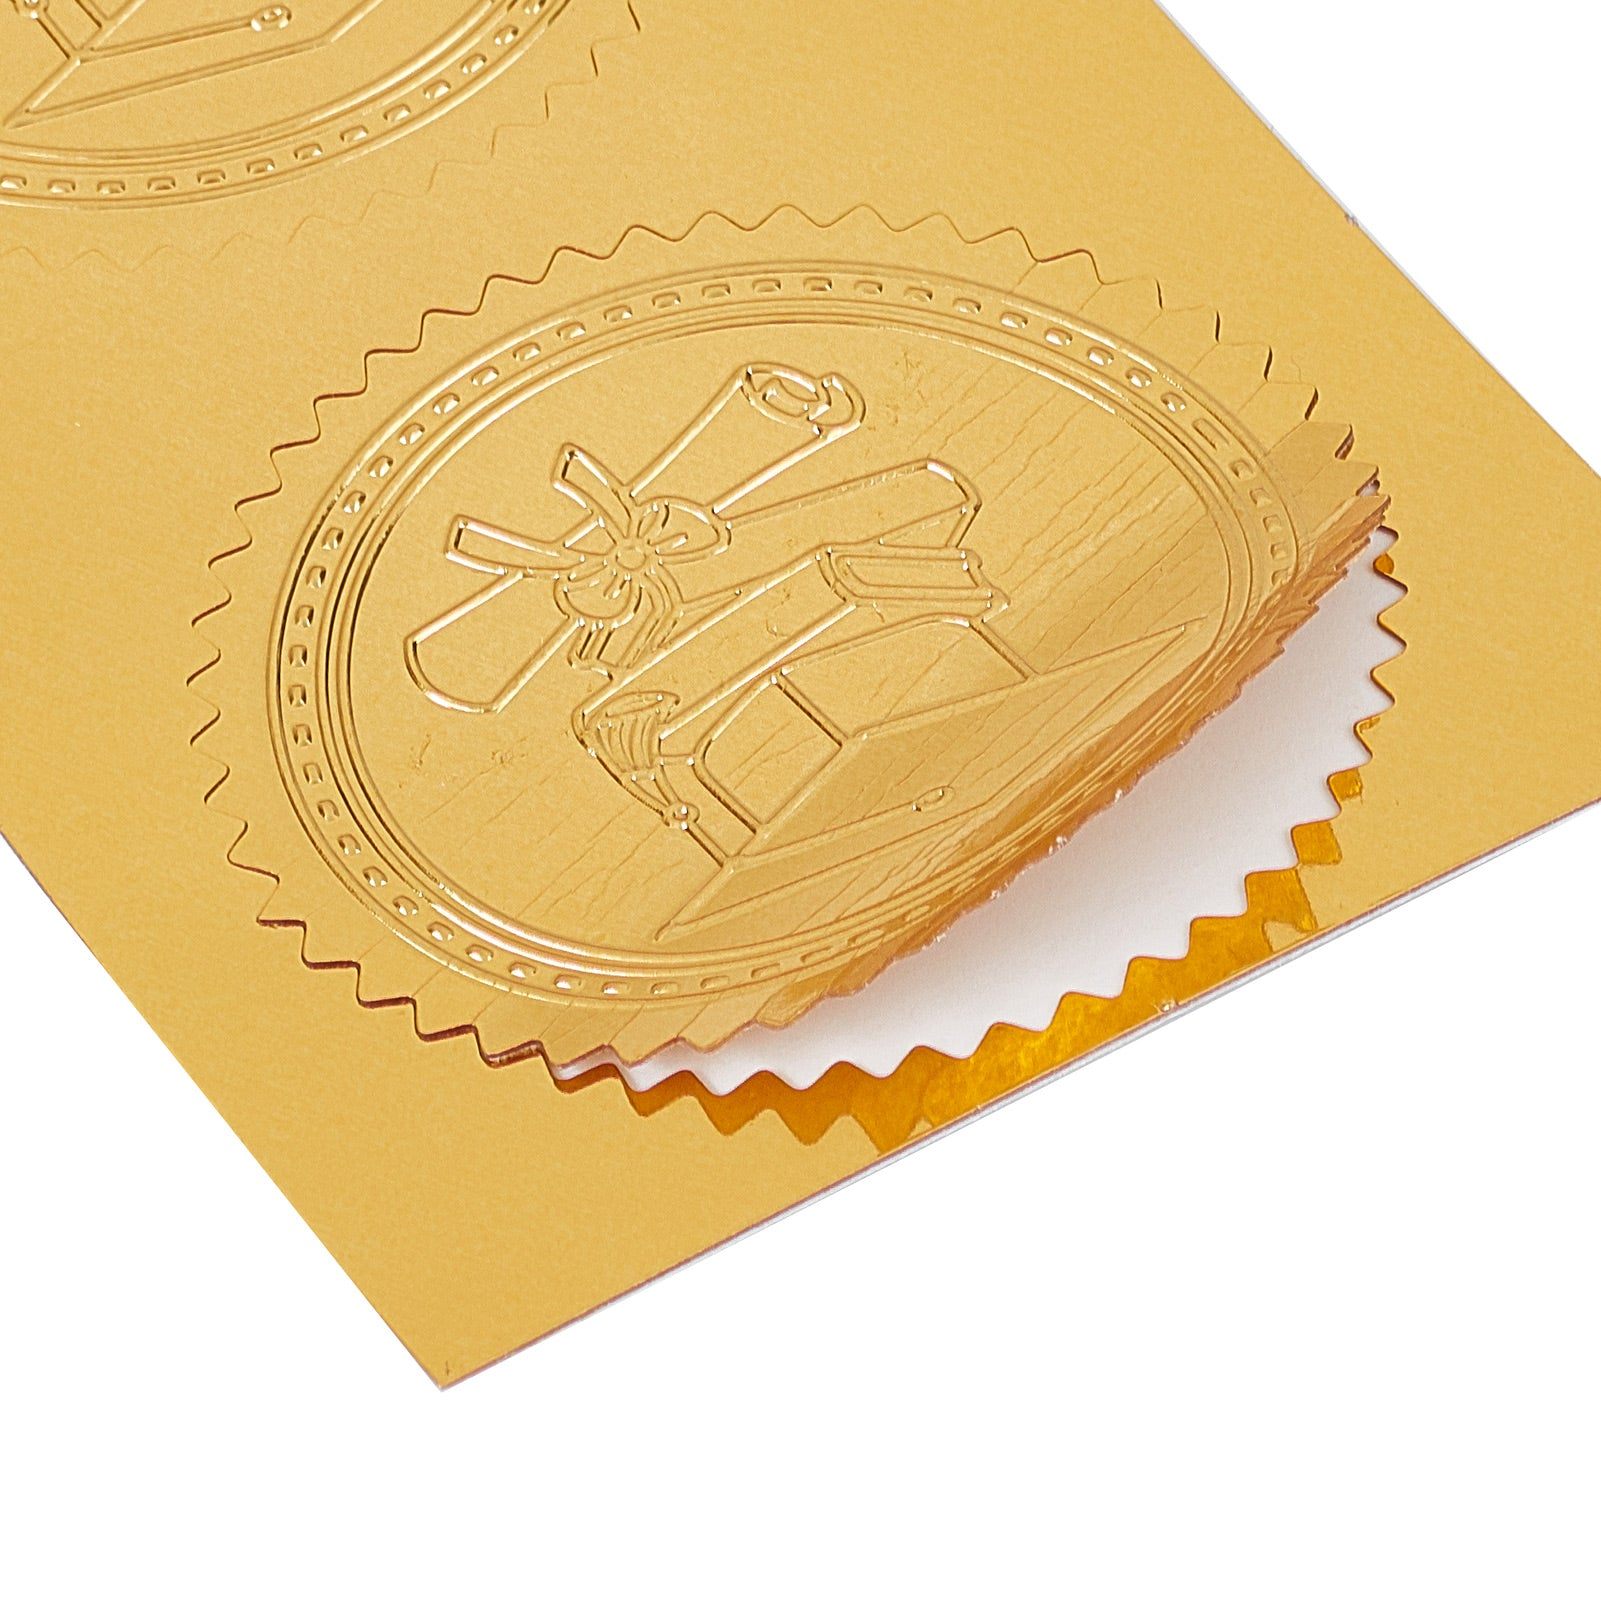 100pcs Embossed Gold Foil Certificate Seals Self Adhesive Stickers-8